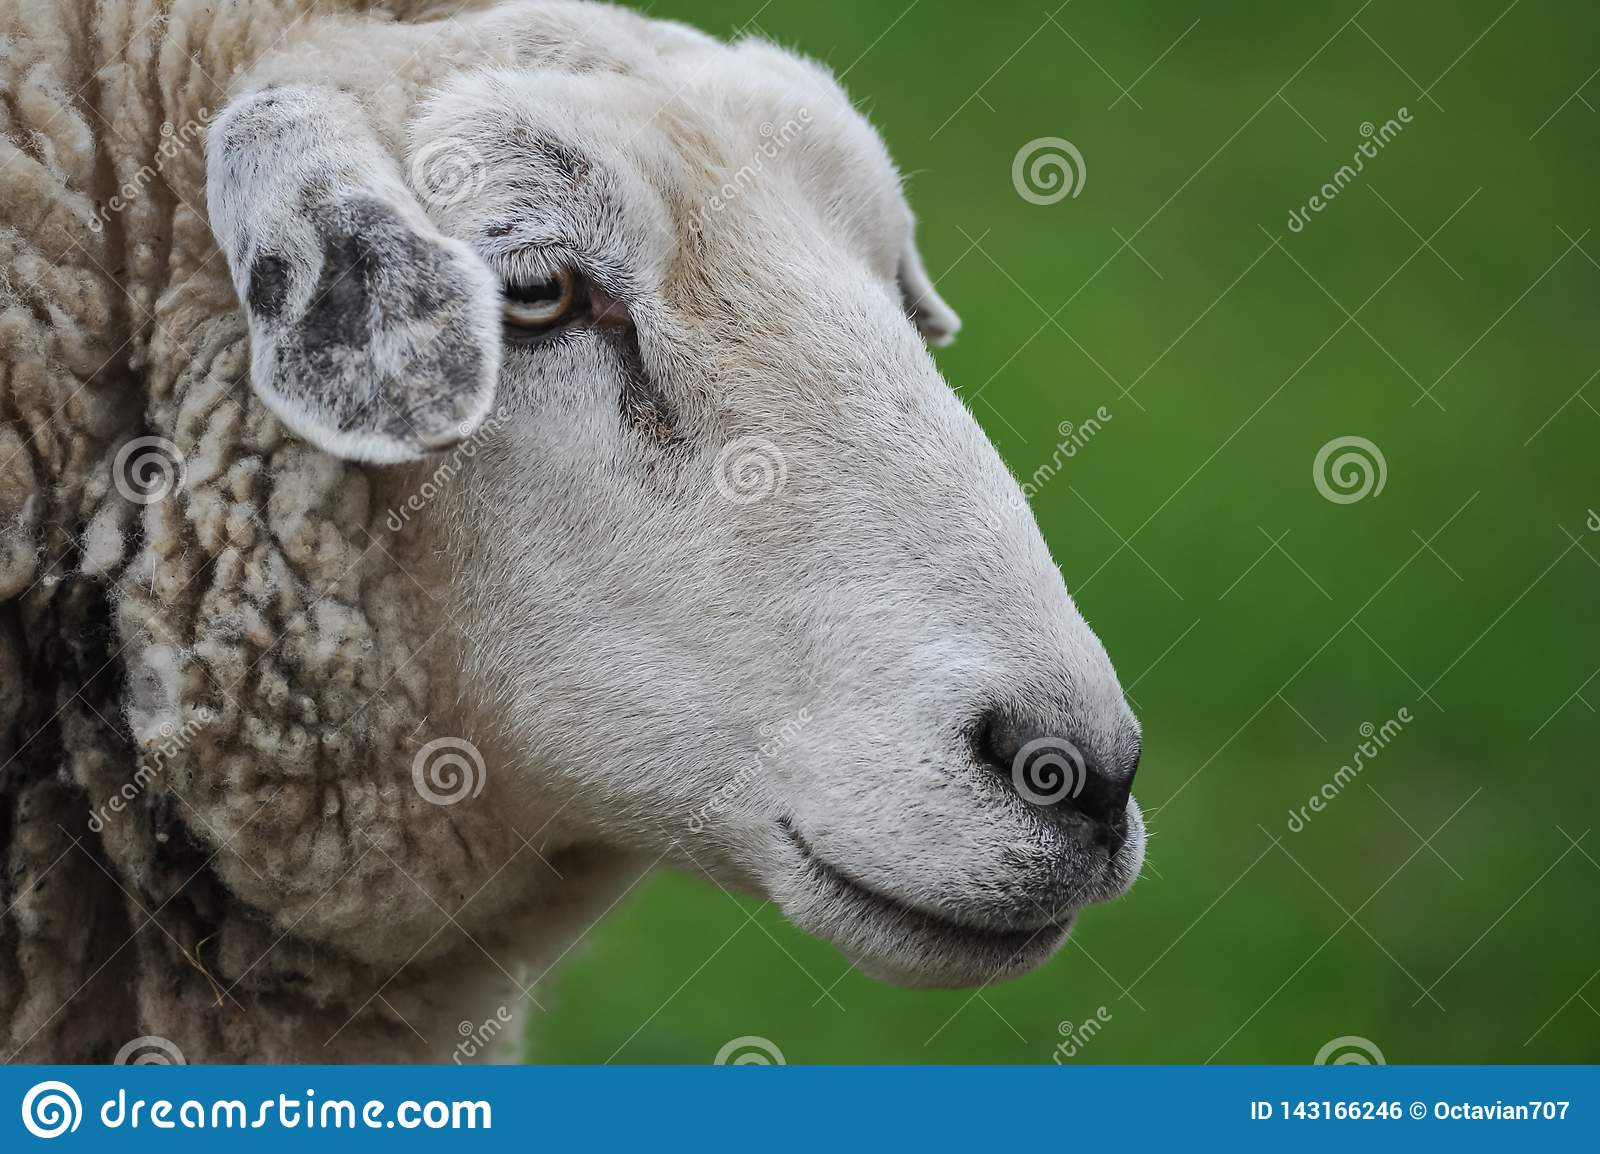 Profile of sheep on green blurred background